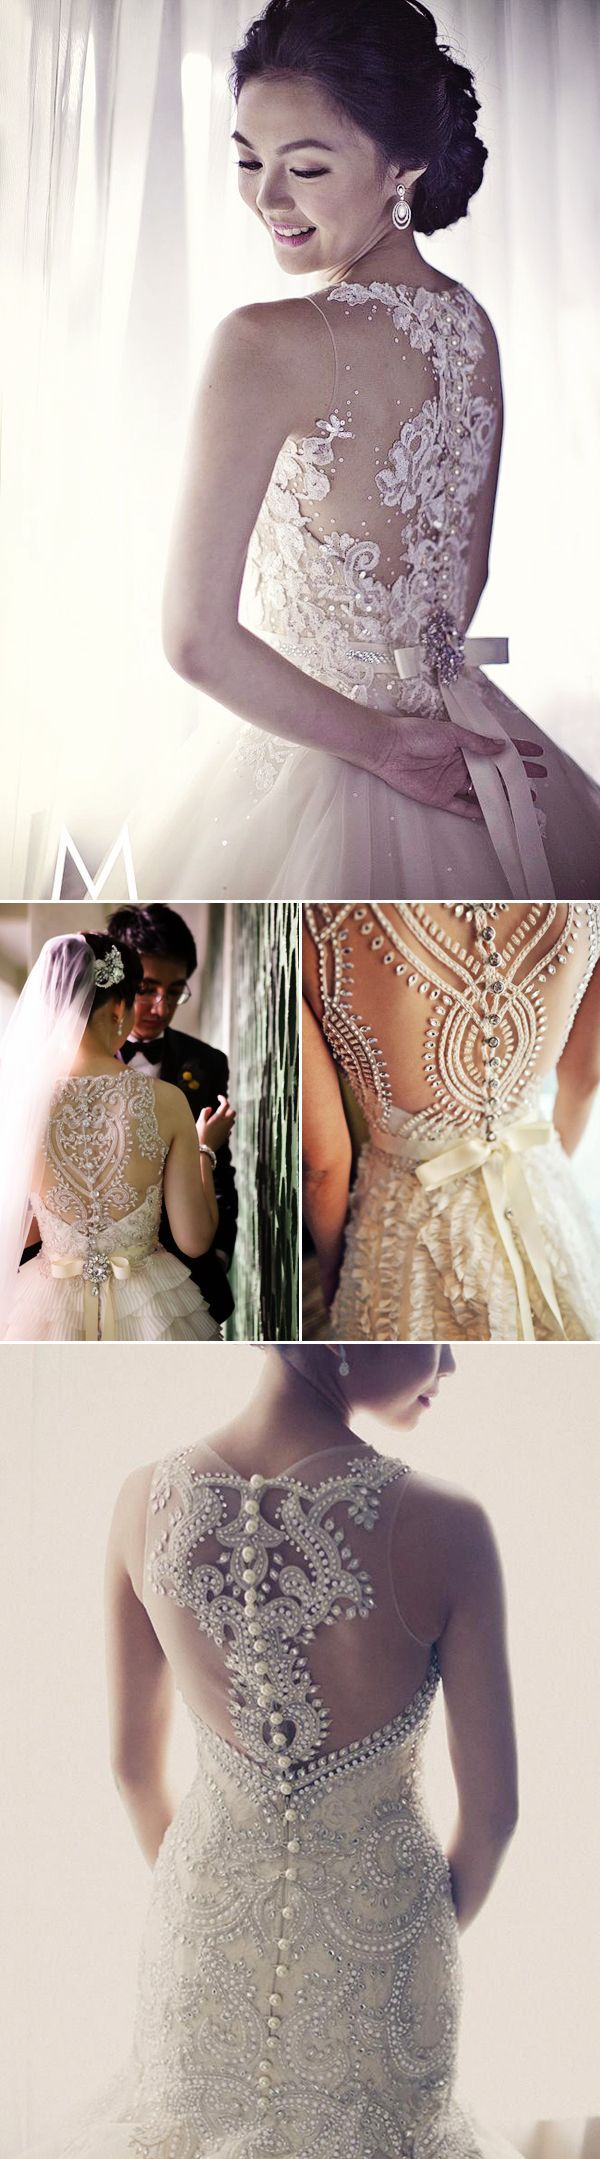 38 Stunning Lace Back Wedding Dresses - Veluz Reyes. Middle one is gorgeous, without buttons for me though